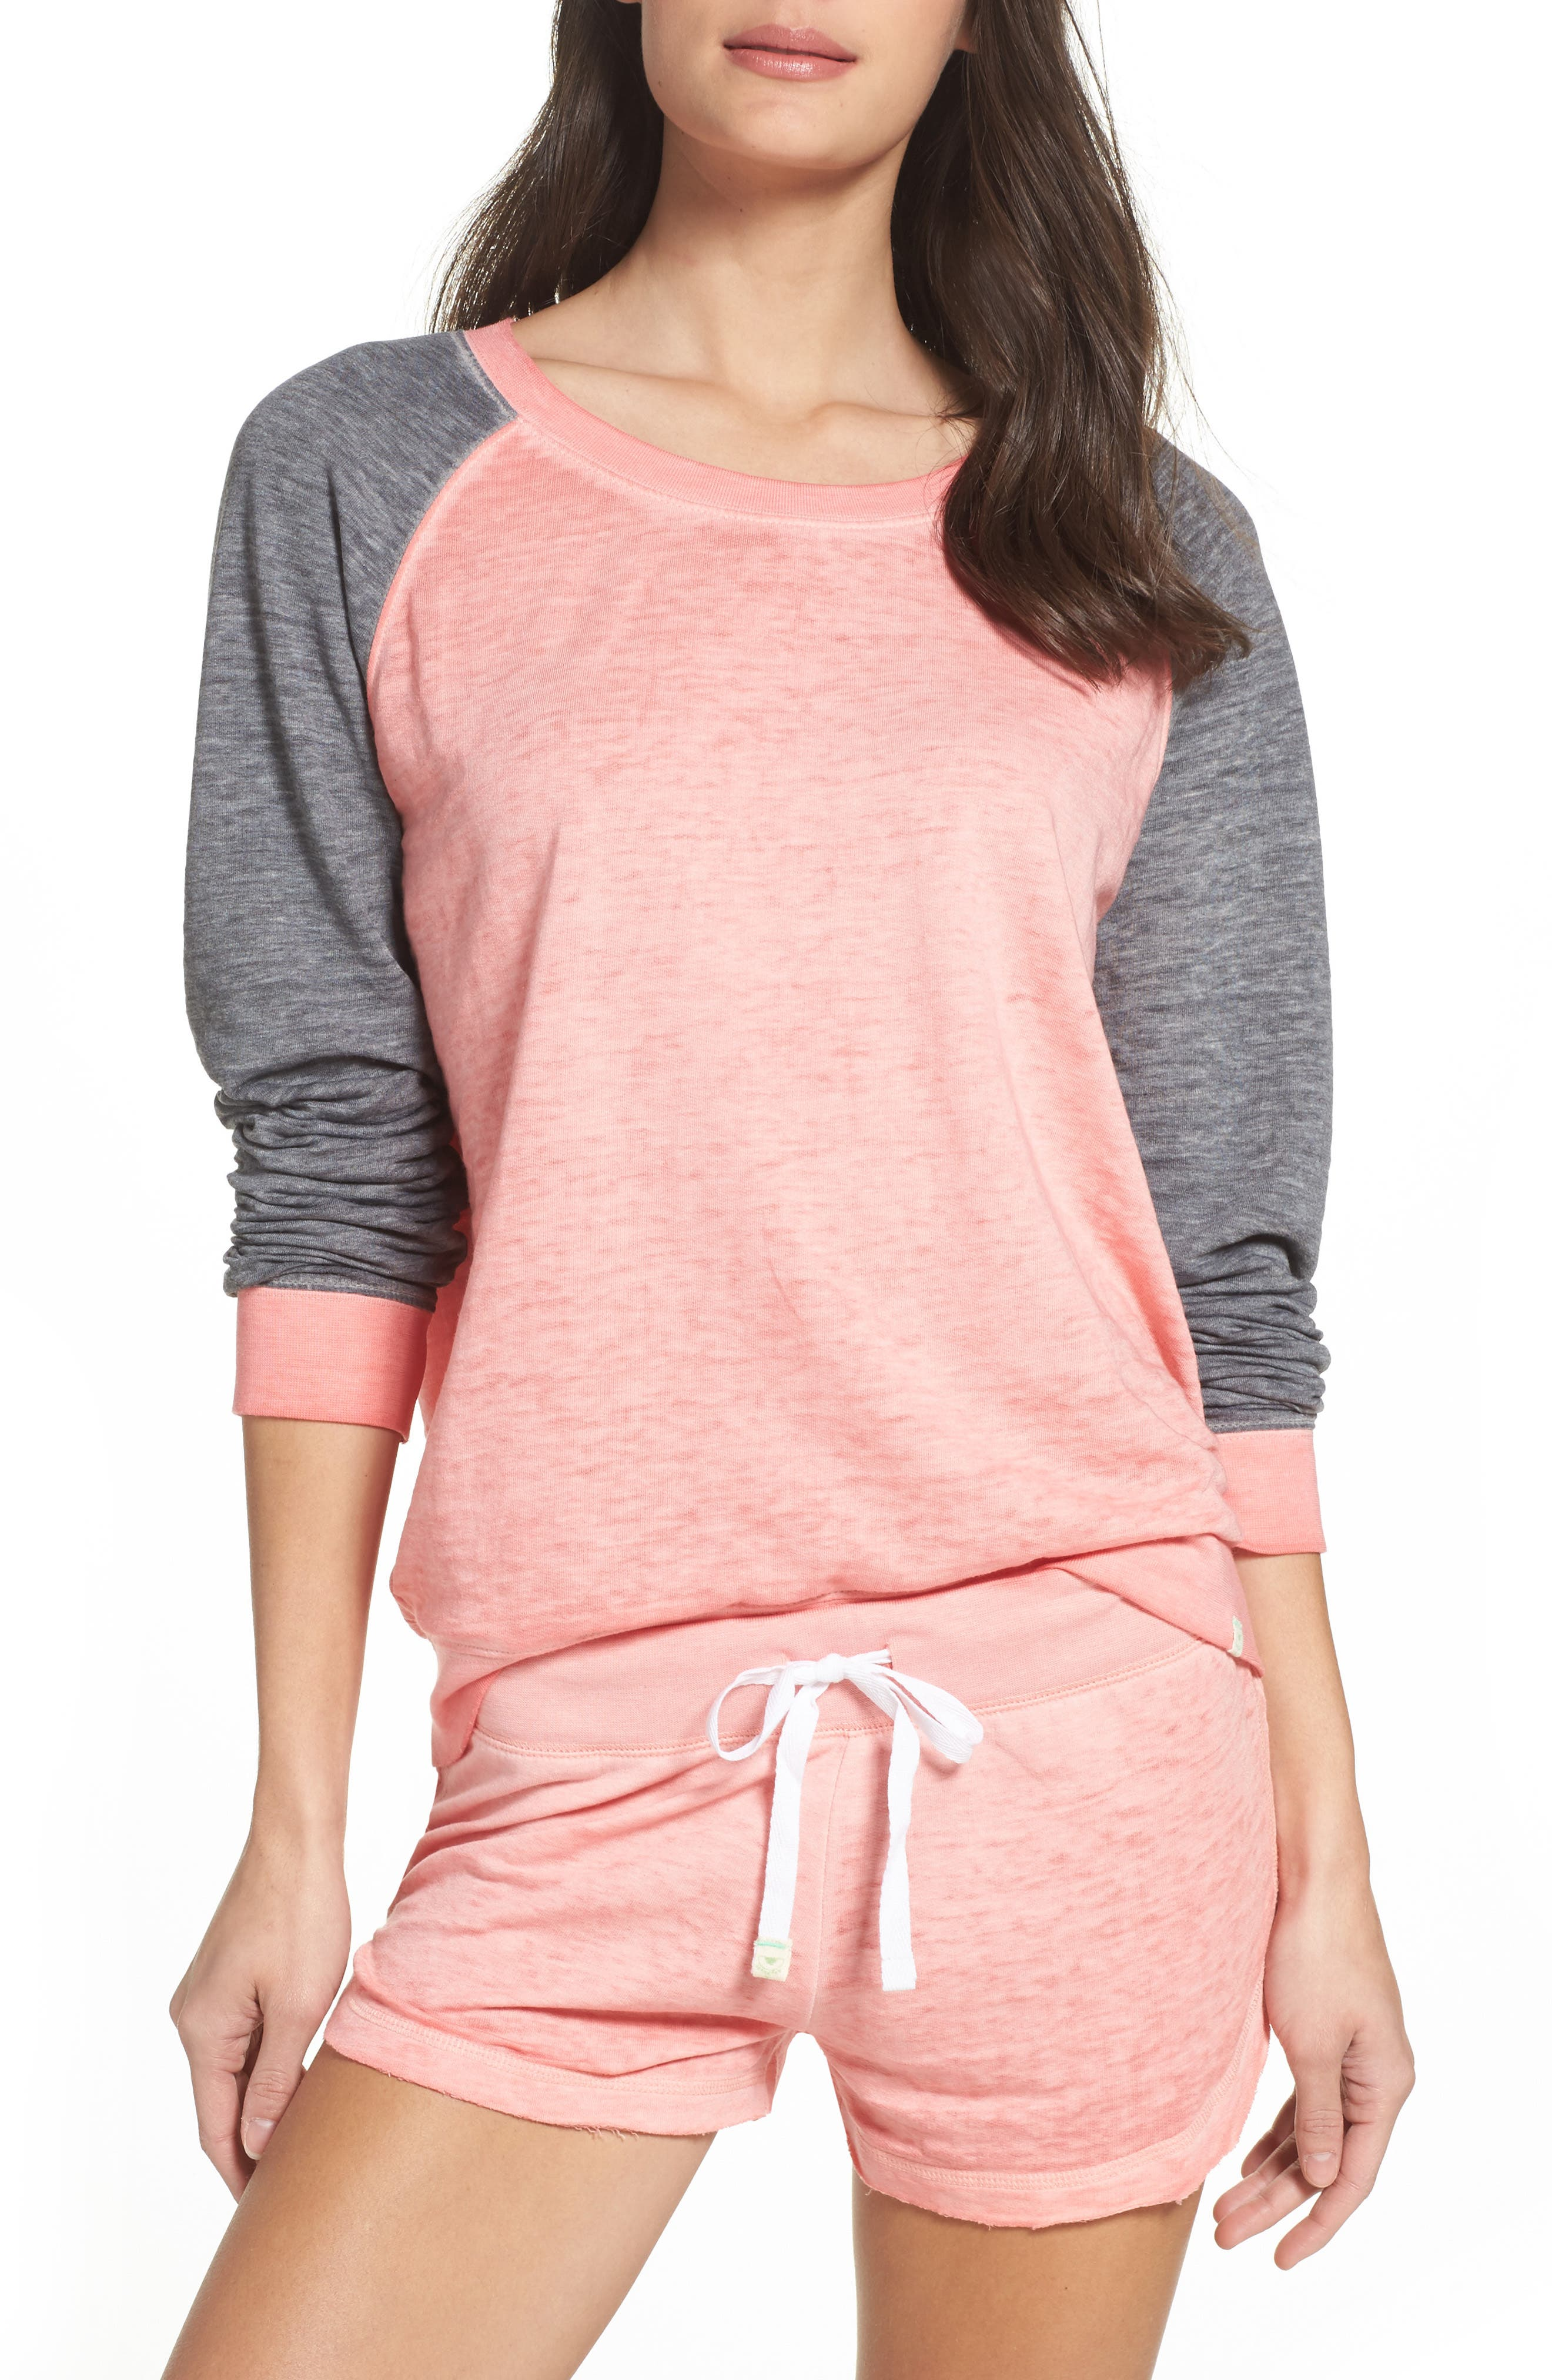 Honeydew Intimates Burnout Lounge Sweatshirt